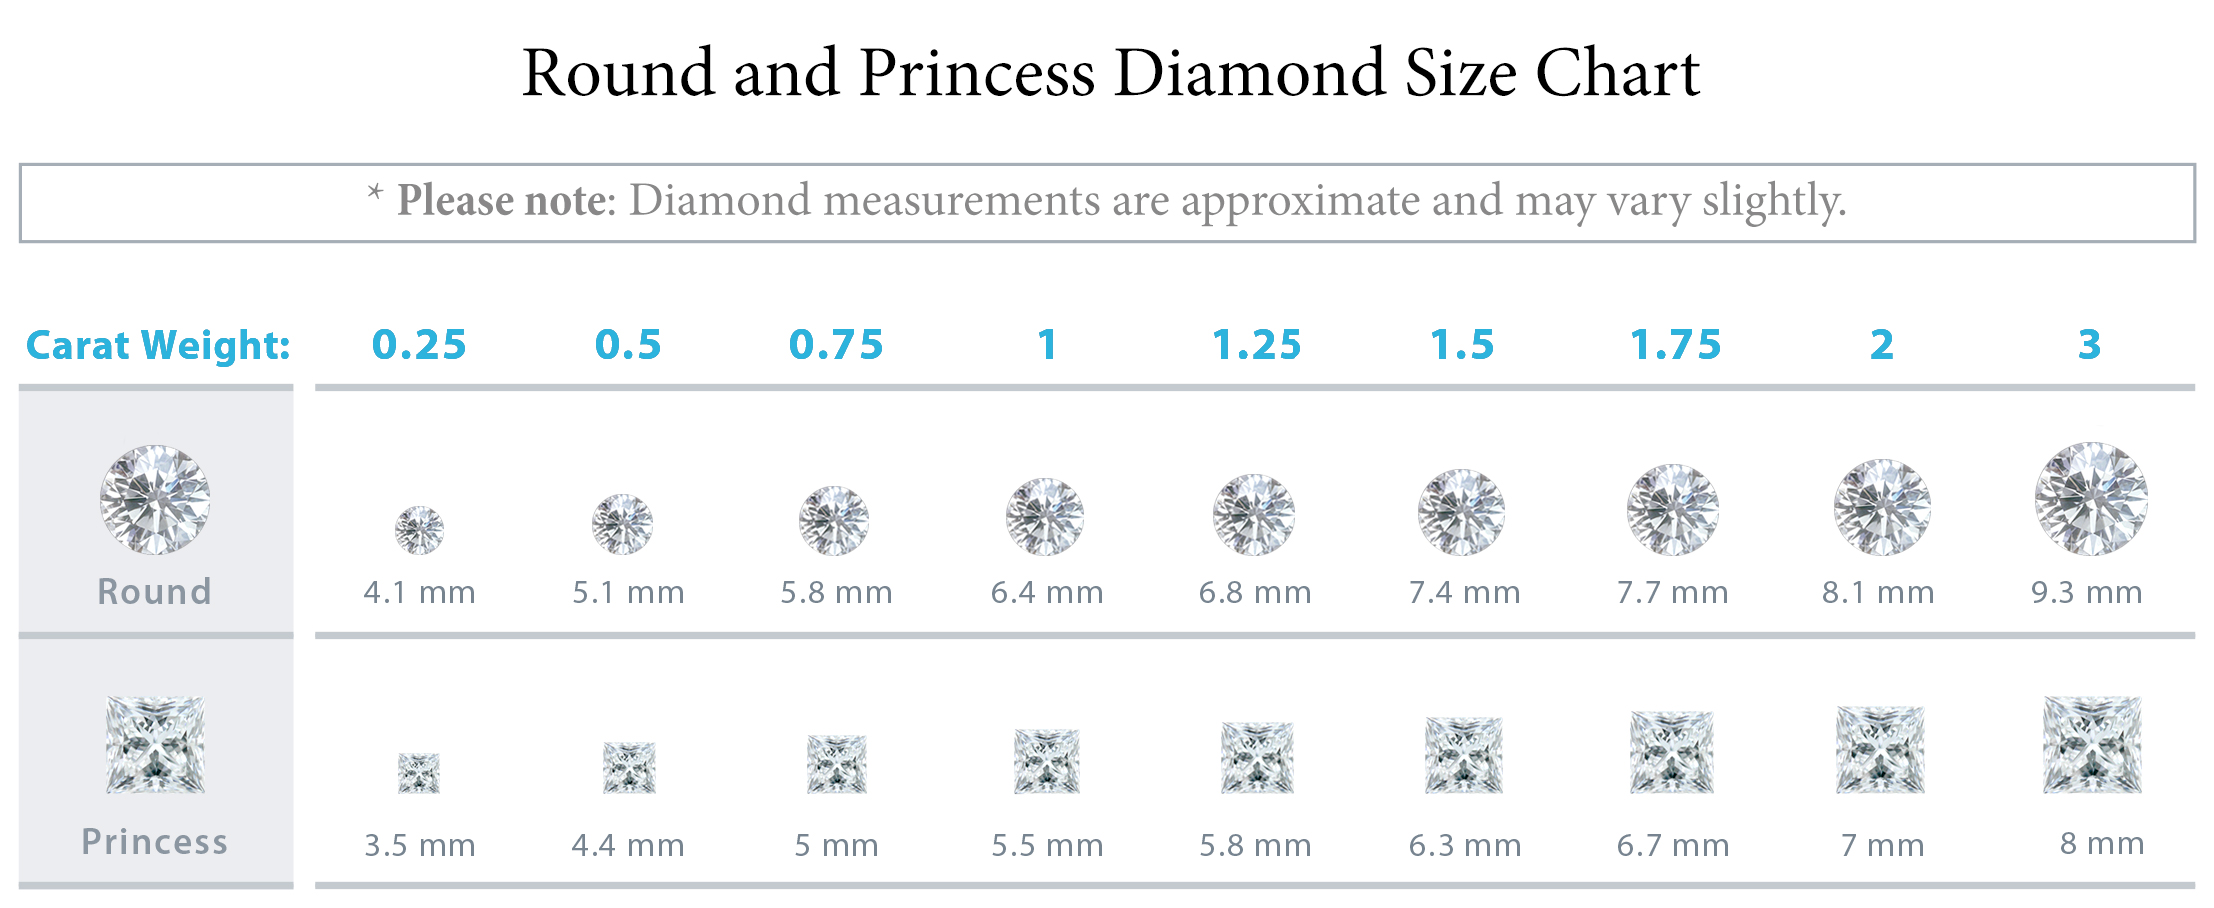 jewelry purity reveti jewelguide fine diamond guide jewel